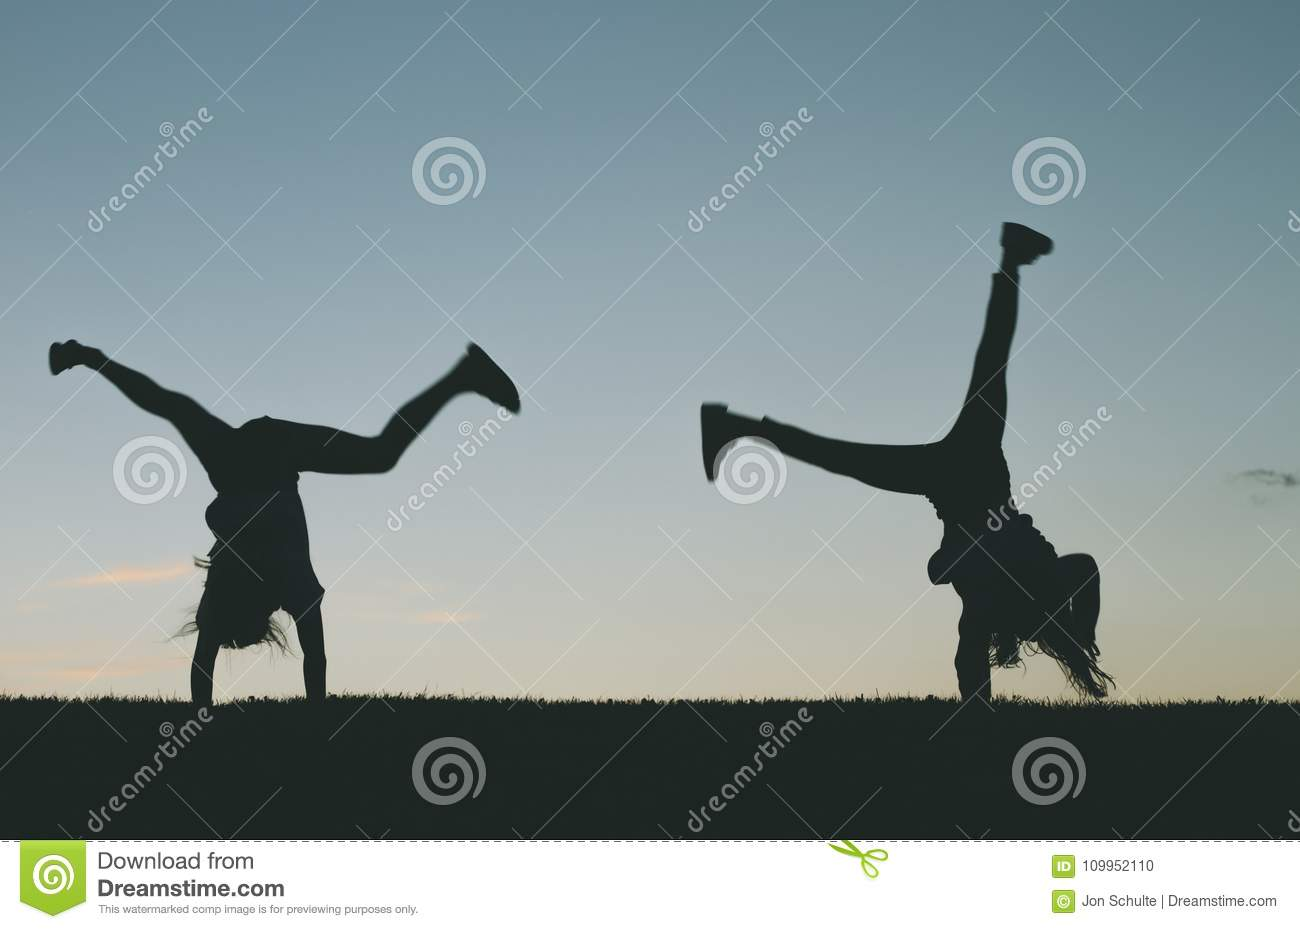 Children doing cartwheels silhouette